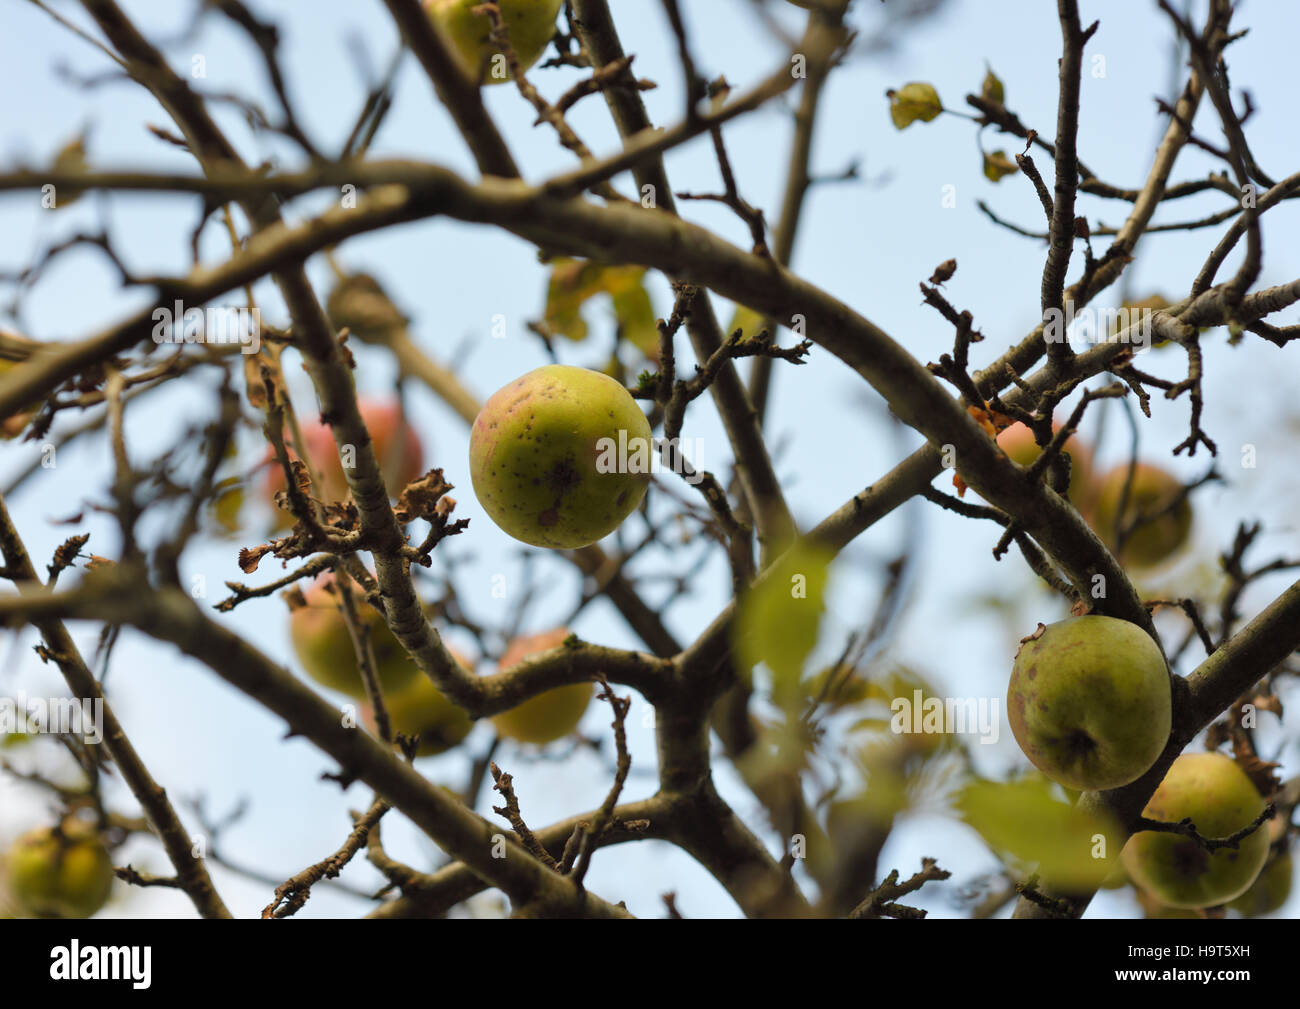 apples past their best on tree - Stock Image